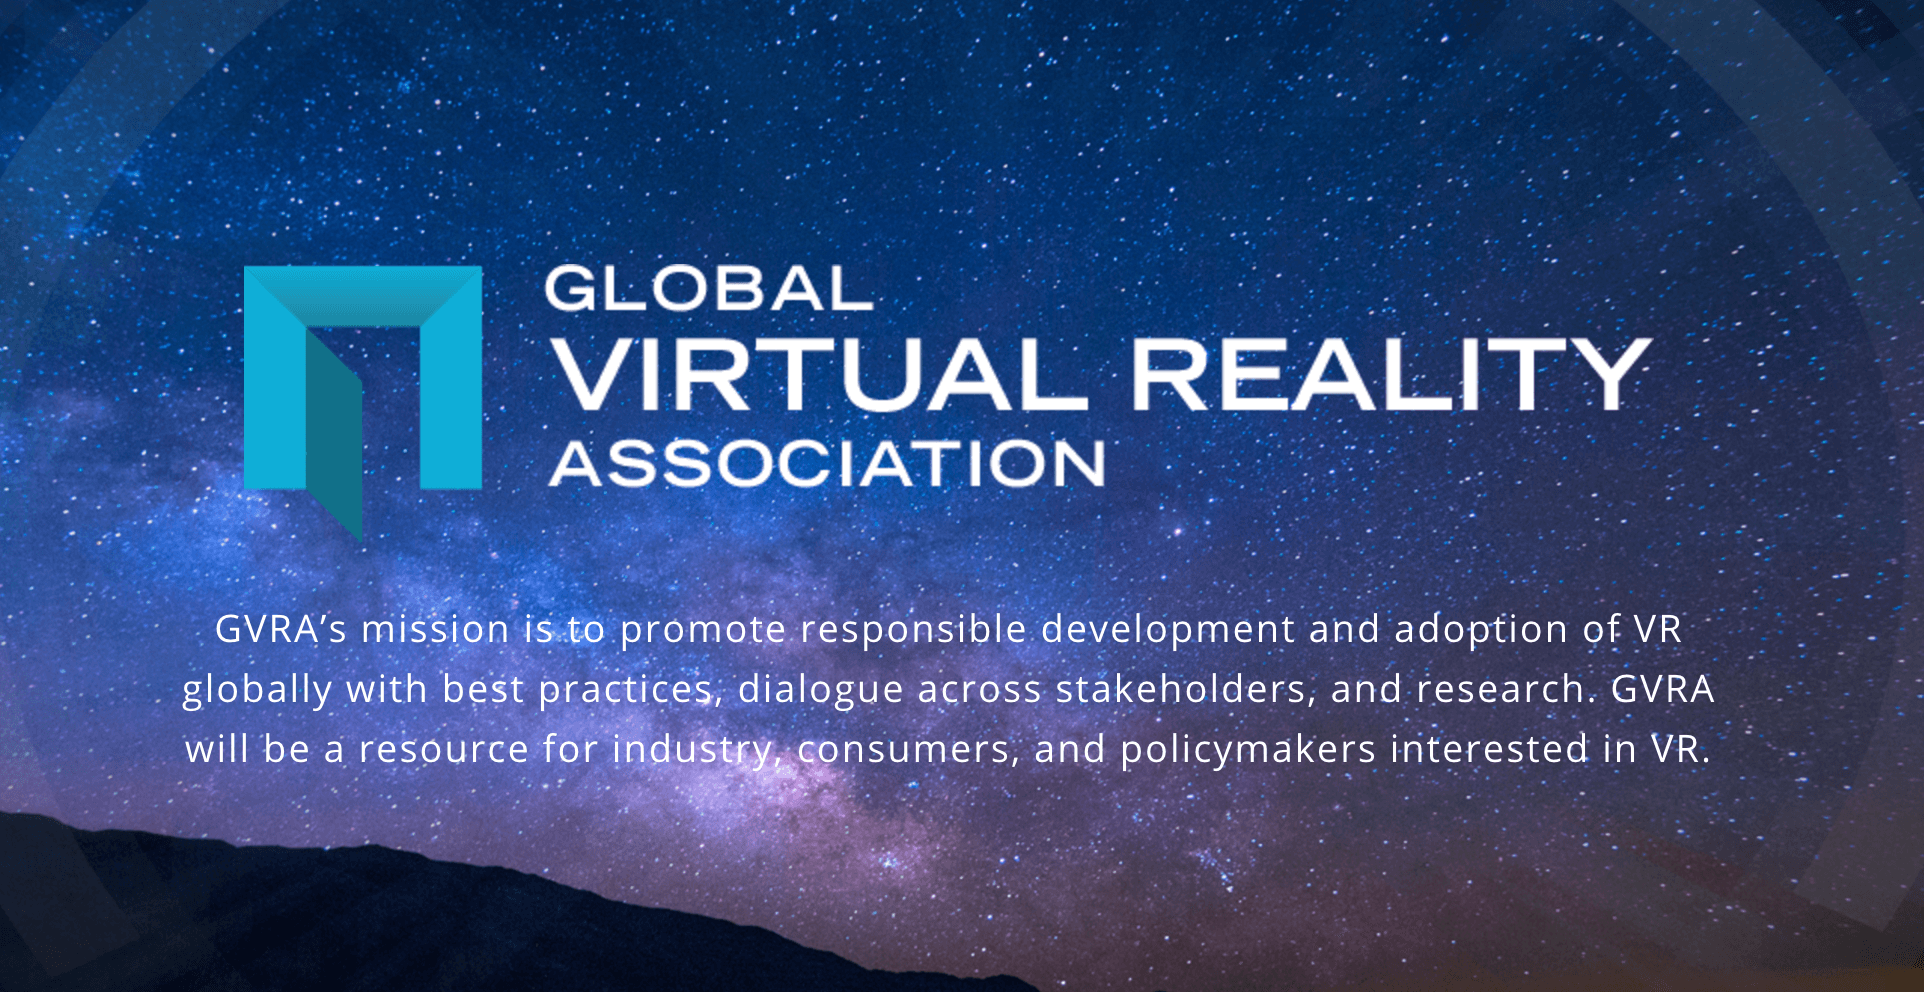 Global Virtual Reality Association (GVRA)